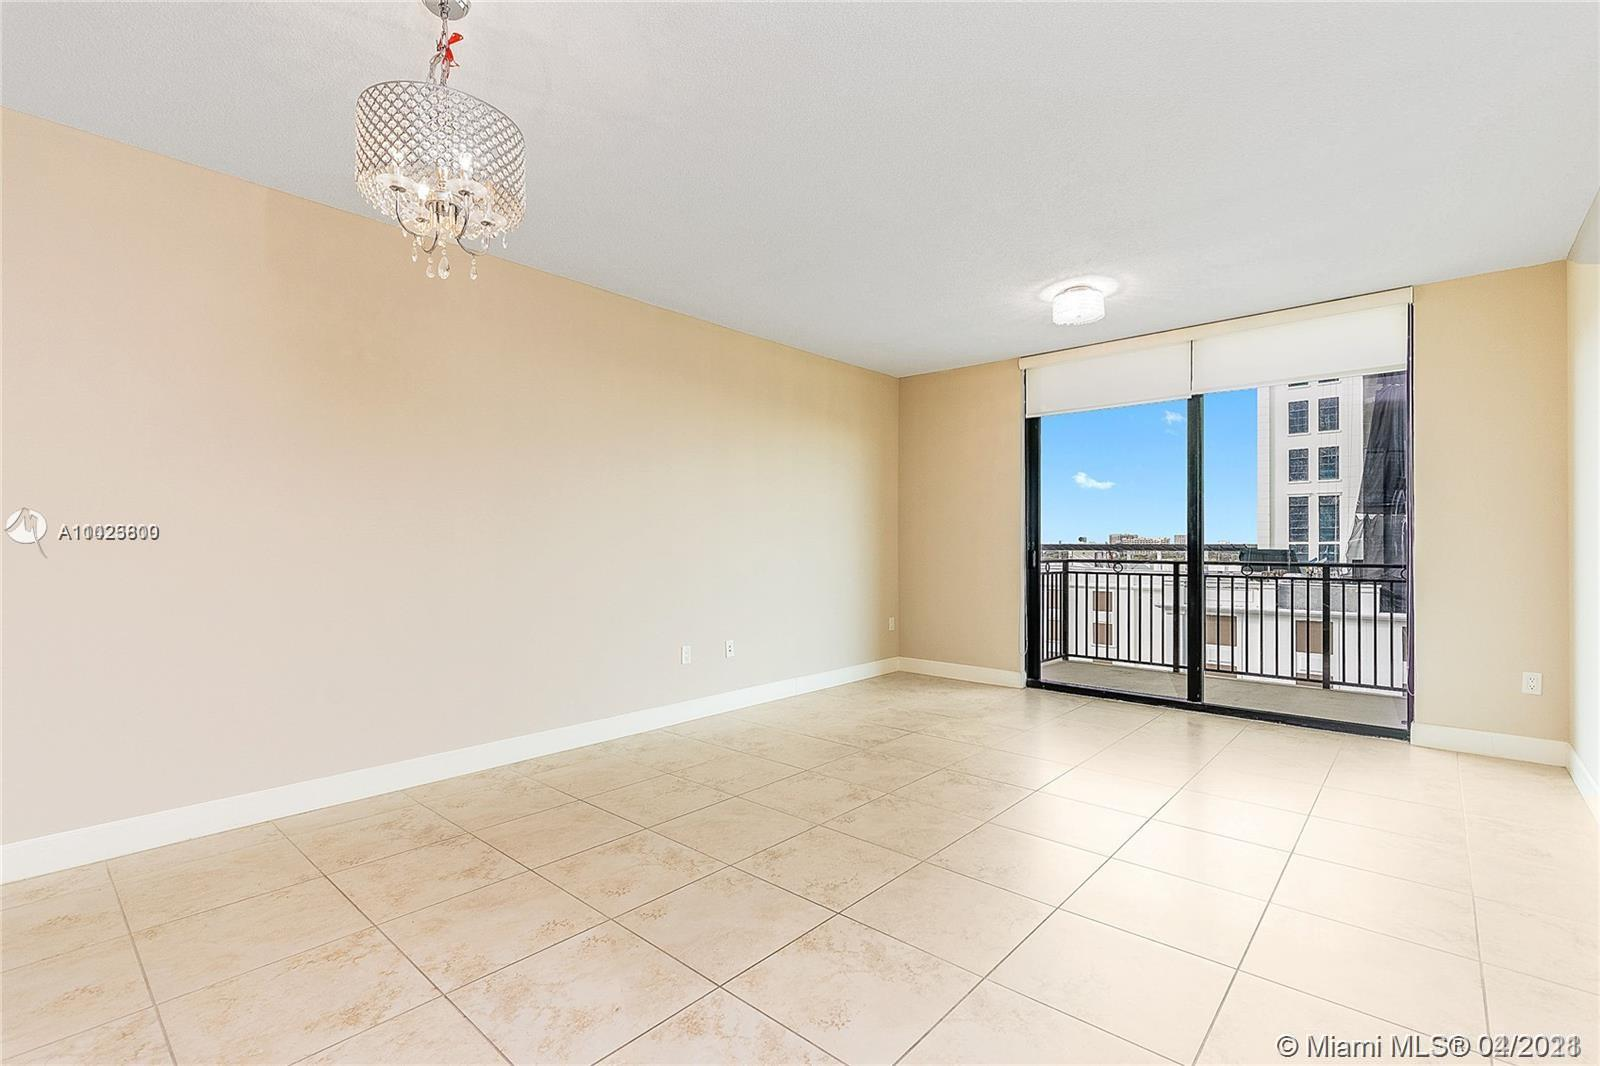 Beautiful and Modern 1 Bedroom / 1.5 Bath unit in Coral Gables, with open kitchen, spacious living/dining room, finished walk in closet, washer/dryer unit. The building has great amenities, a pool with deck overlooking Coral Gables, well equipped fitness center and a club room for private gathering. Excellent location very close to restaurants, bars and shops. Easy to show, ready to move In